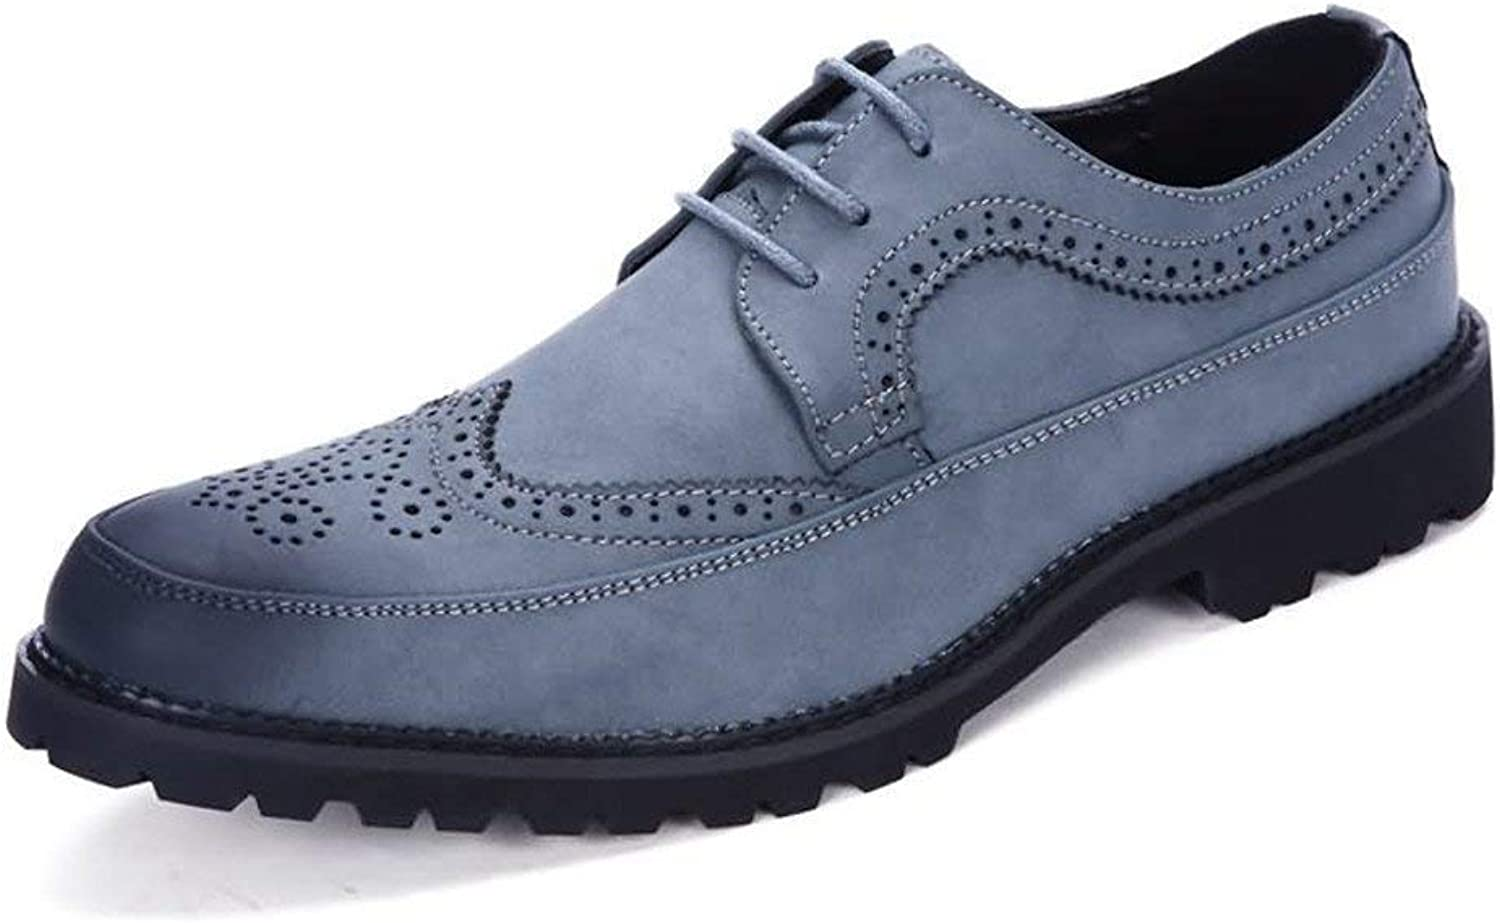 FuweiEncore 2018 Men's Oxford Flat Heel Lace up PU Leather Leisure Tooling shoes (color  bluee, Size  42 EU) (color   bluee, Size   43 EU)